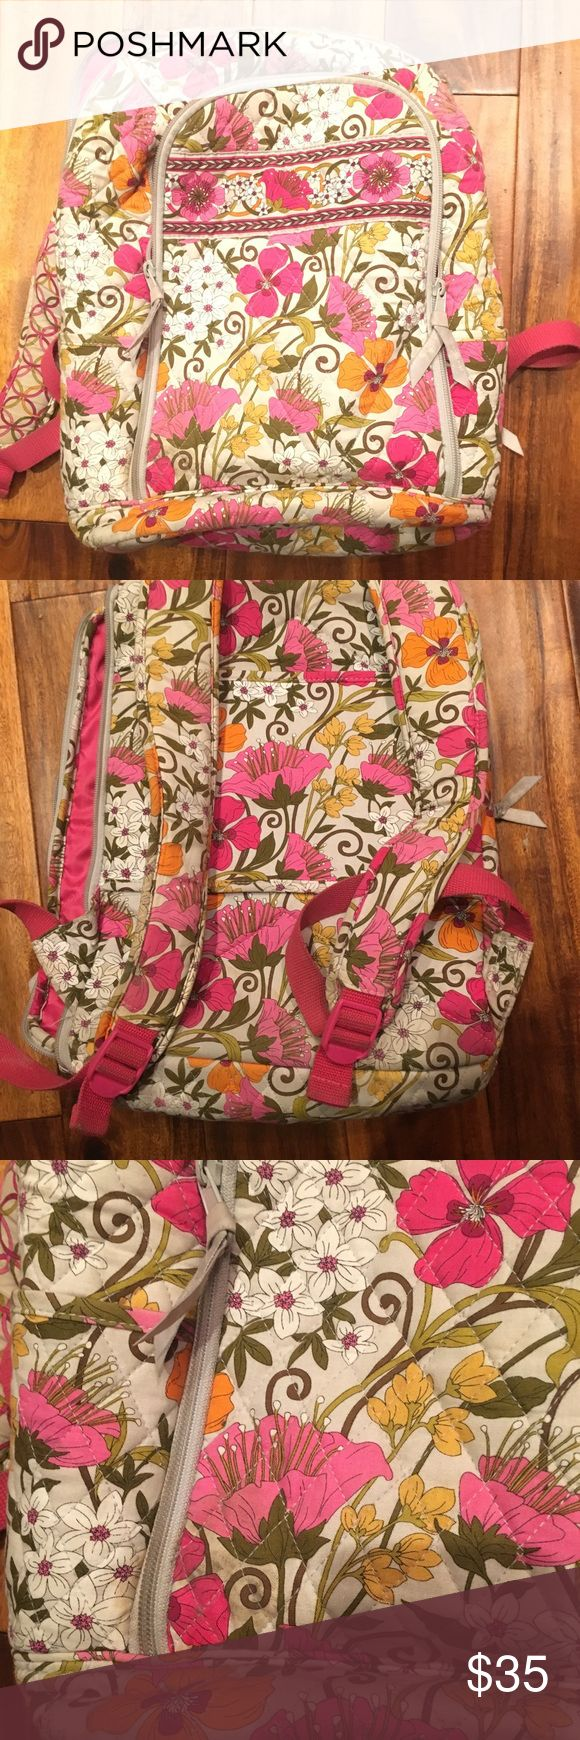 Vera Bradley laptop backpack Vera Bradley laptop back pack! Used for only one school year. Decent condition and clean. One dark spot on front and tear on the inside of the shoulder strap that isn't noticeable when worn! Reasonable offers excepted Vera Bradley Bags Backpacks